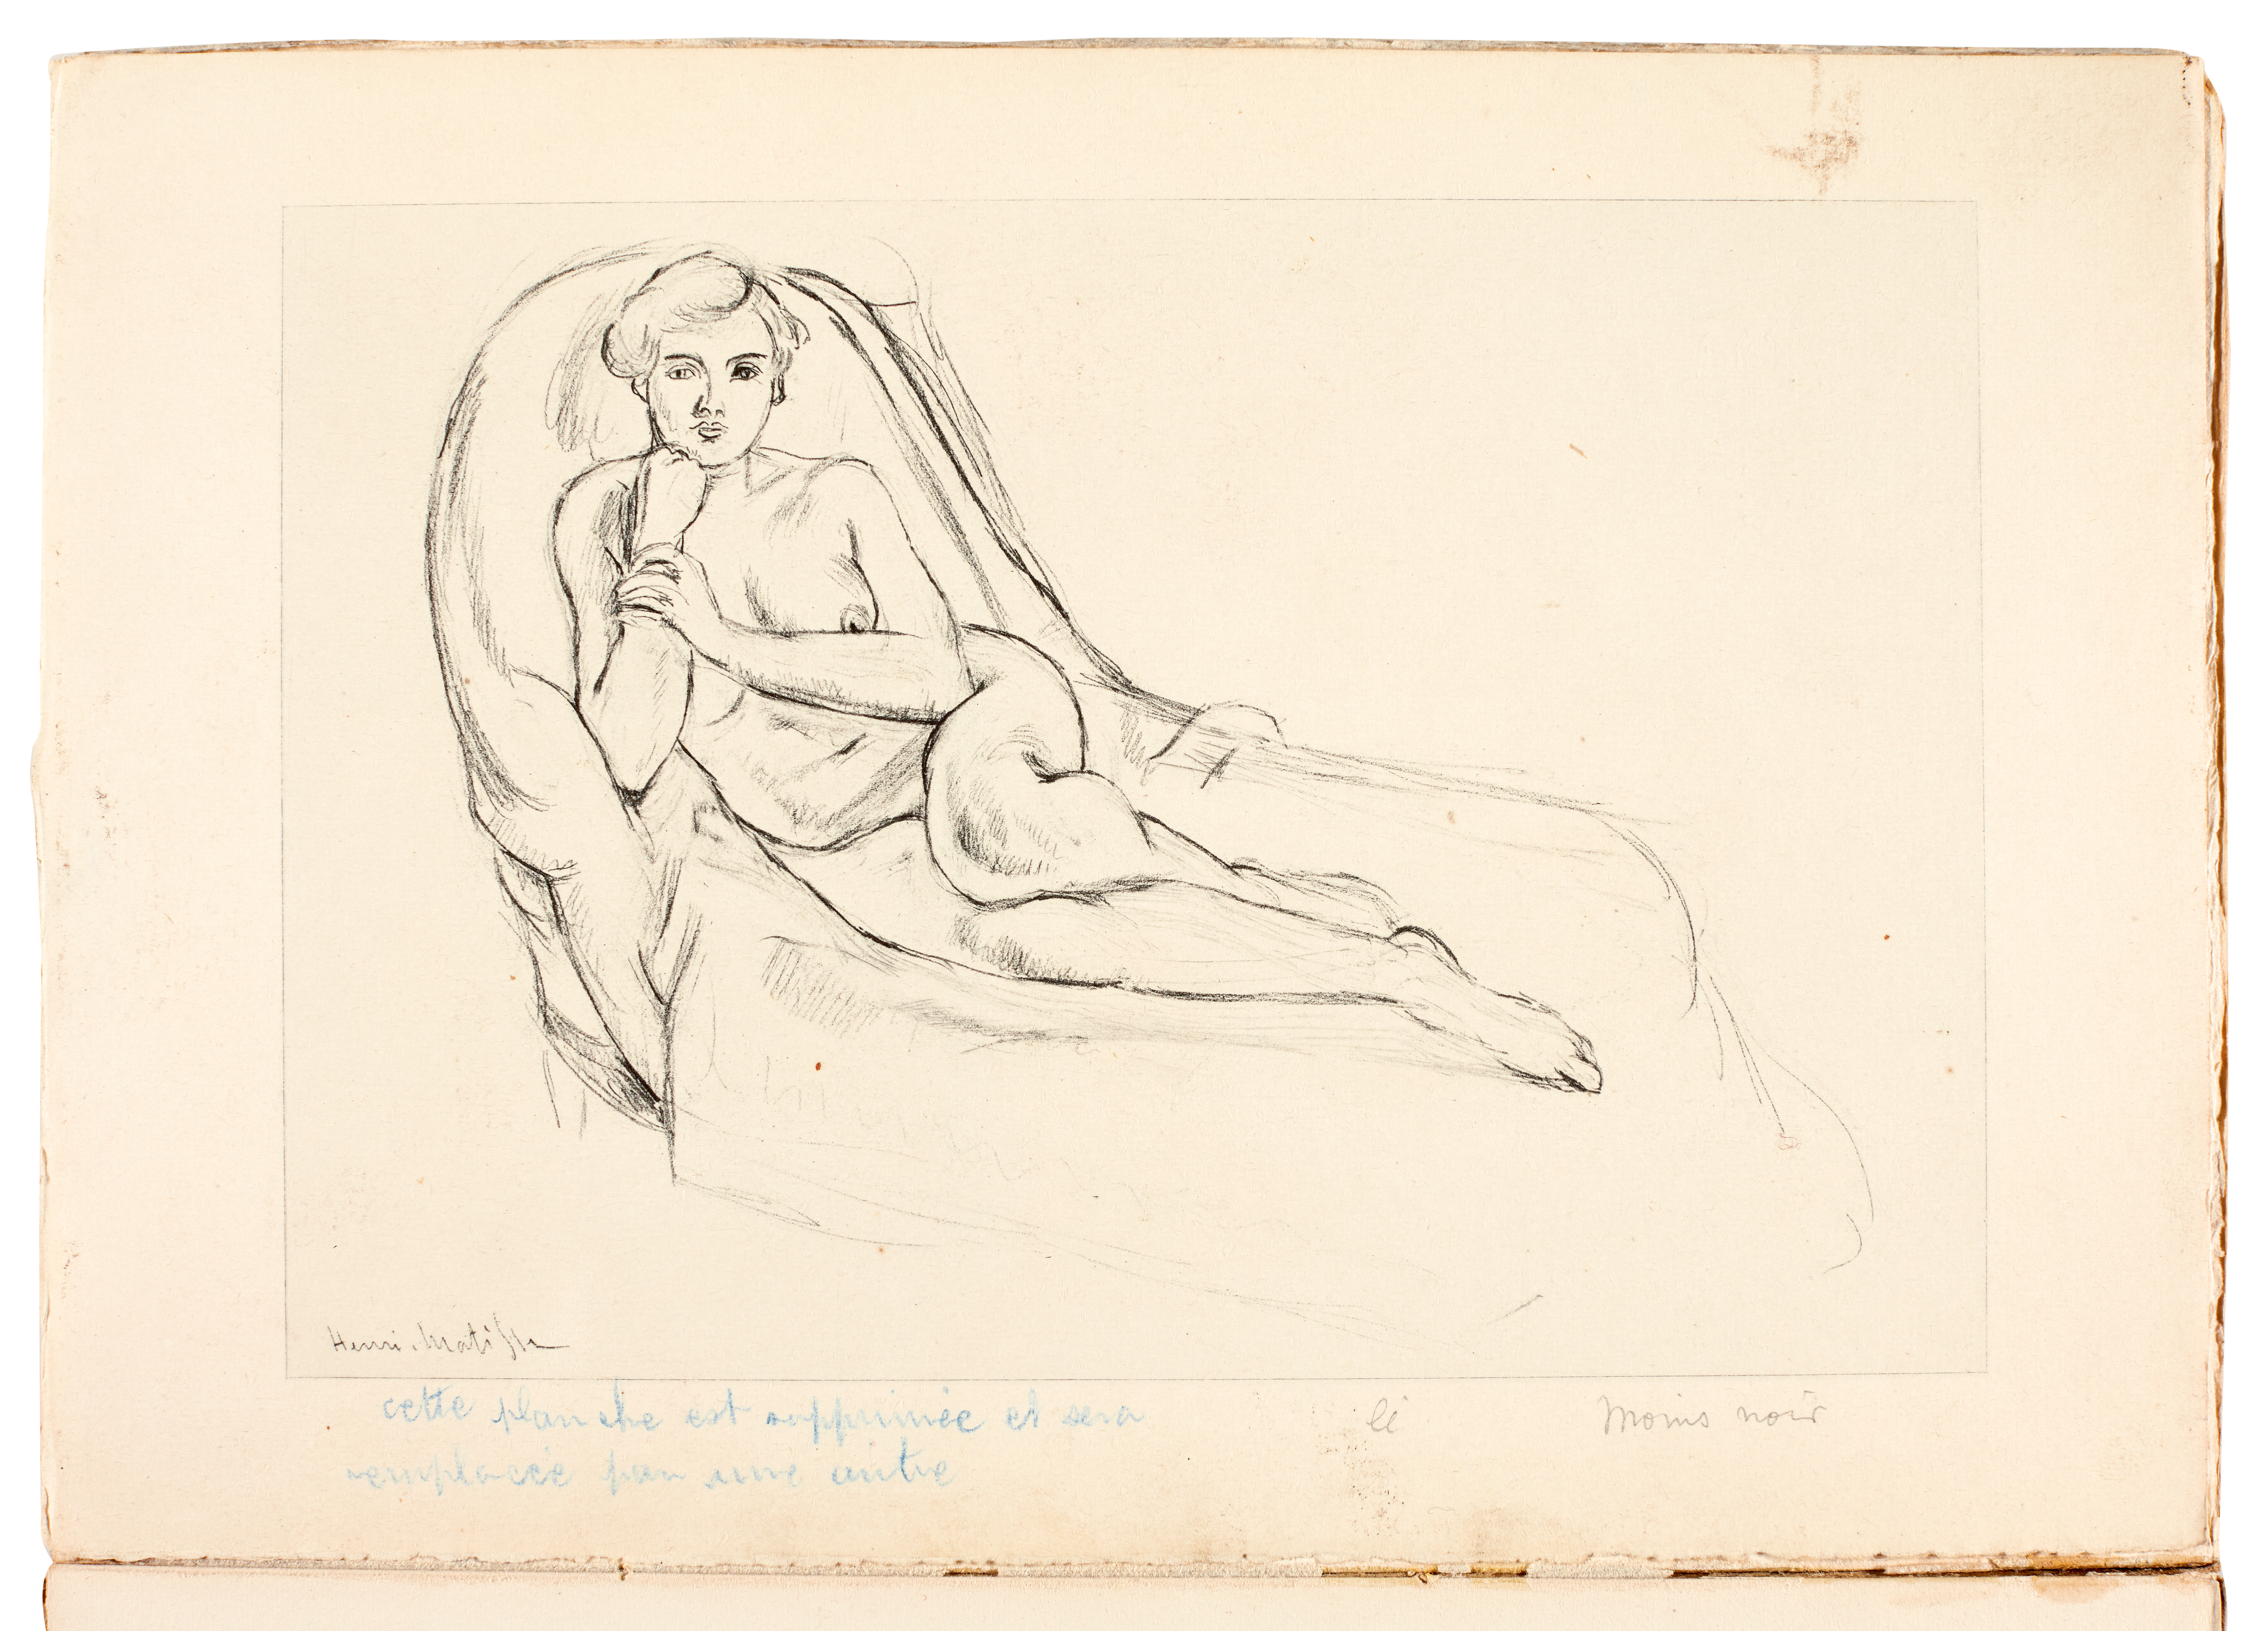 View full screen - View 1 of Lot 136. Matisse, Cinquante dessins, Paris, 1920, 2 copies, original wrappers, one copy inscribed to Jacquemin.